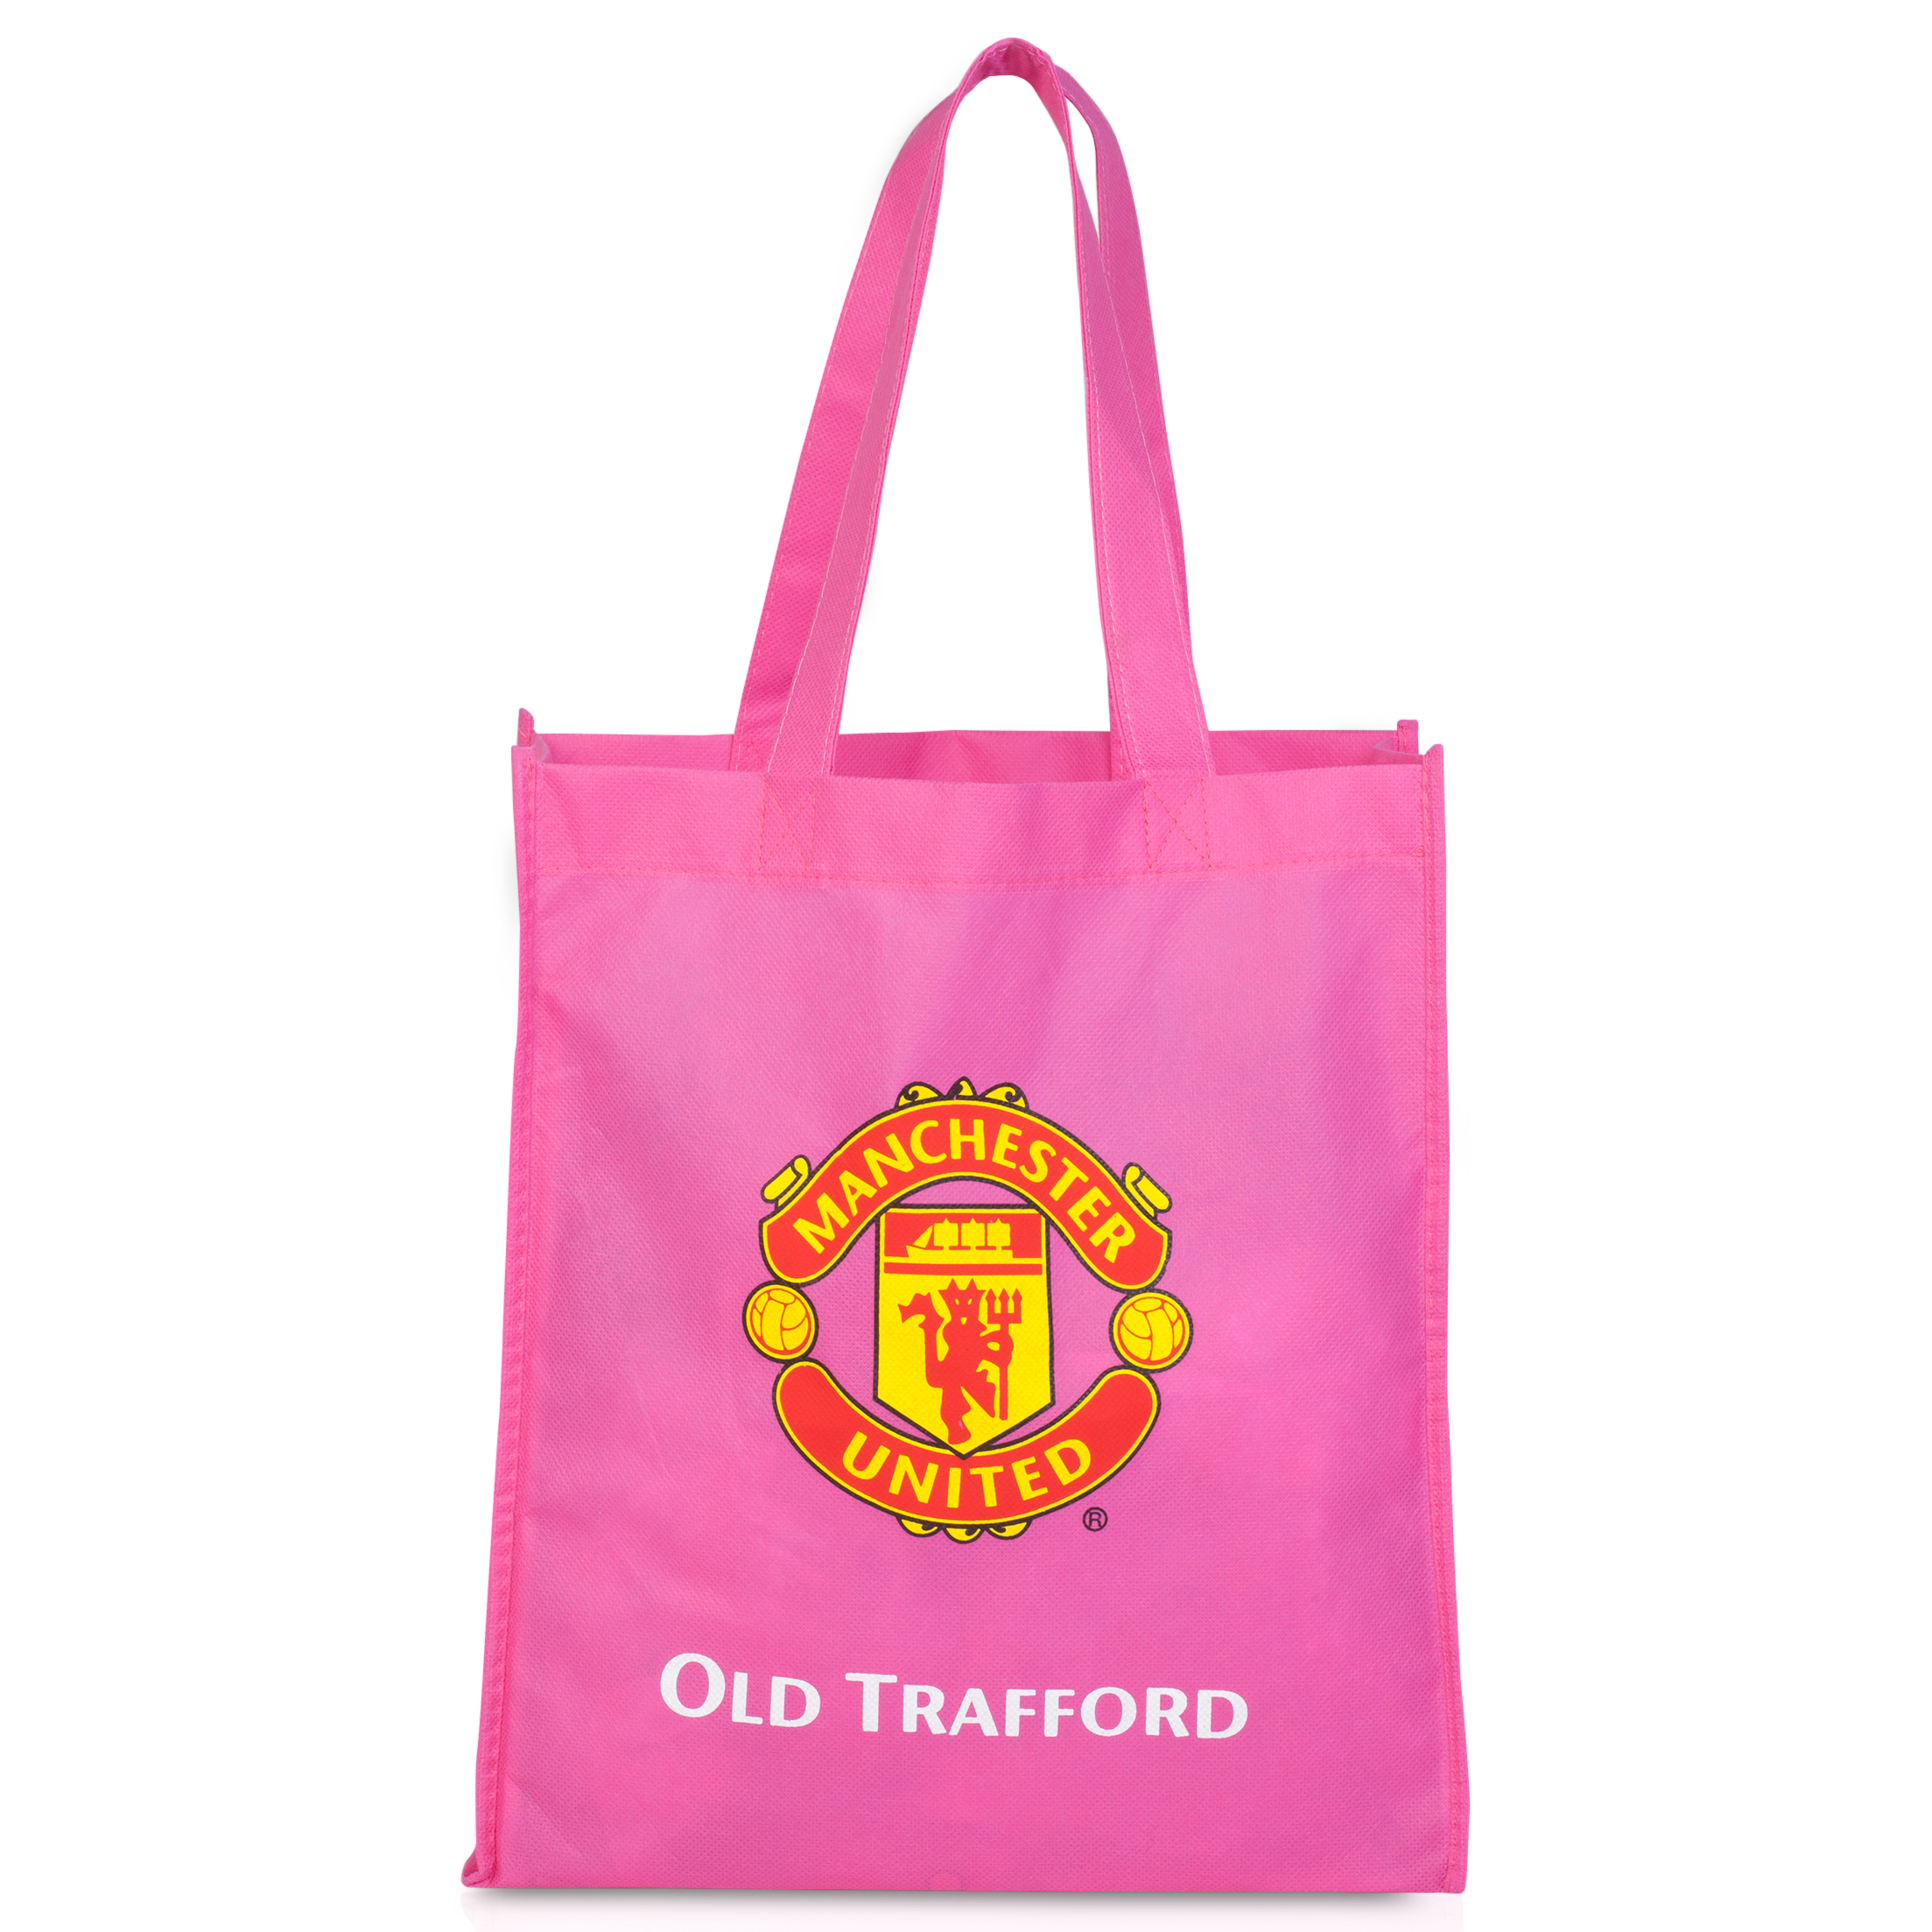 Manchester United Reusable Tote Bag - Pink